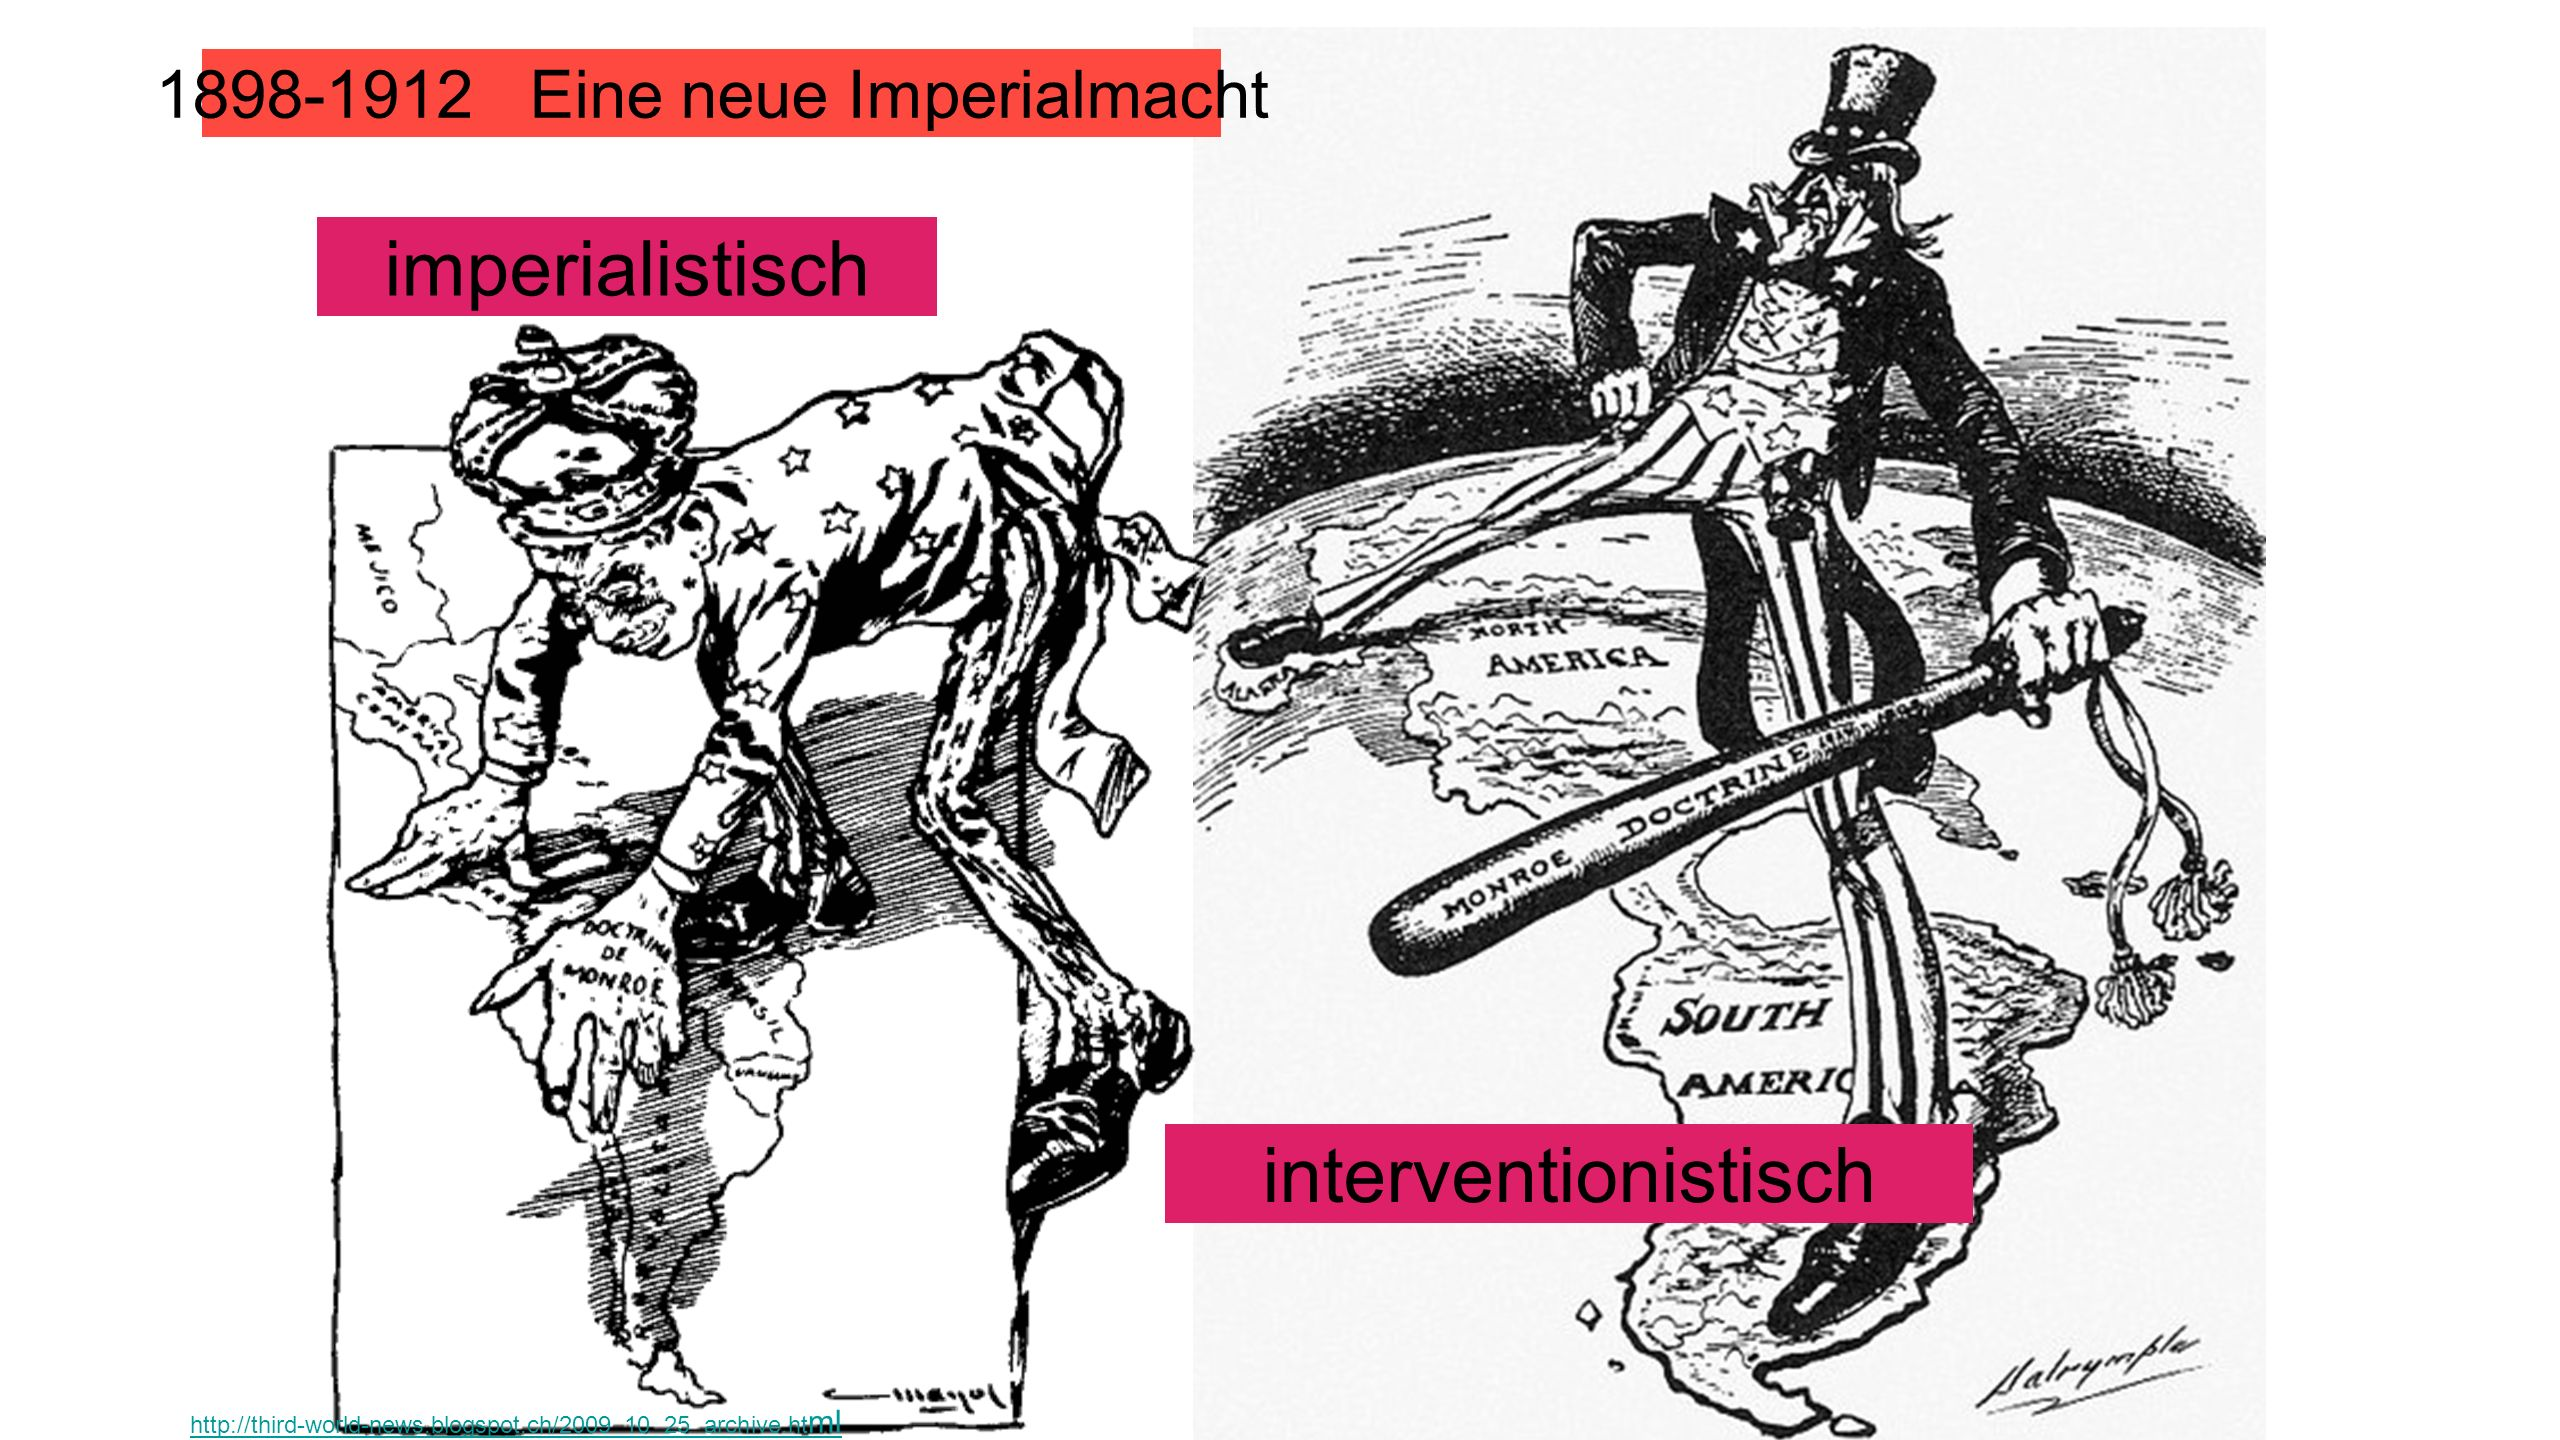 1898-1912 Eine neue Imperialmacht imperialistisch interventionistisch http://third-world-news.blogspot.ch/2009_10_25_archive.ht ml